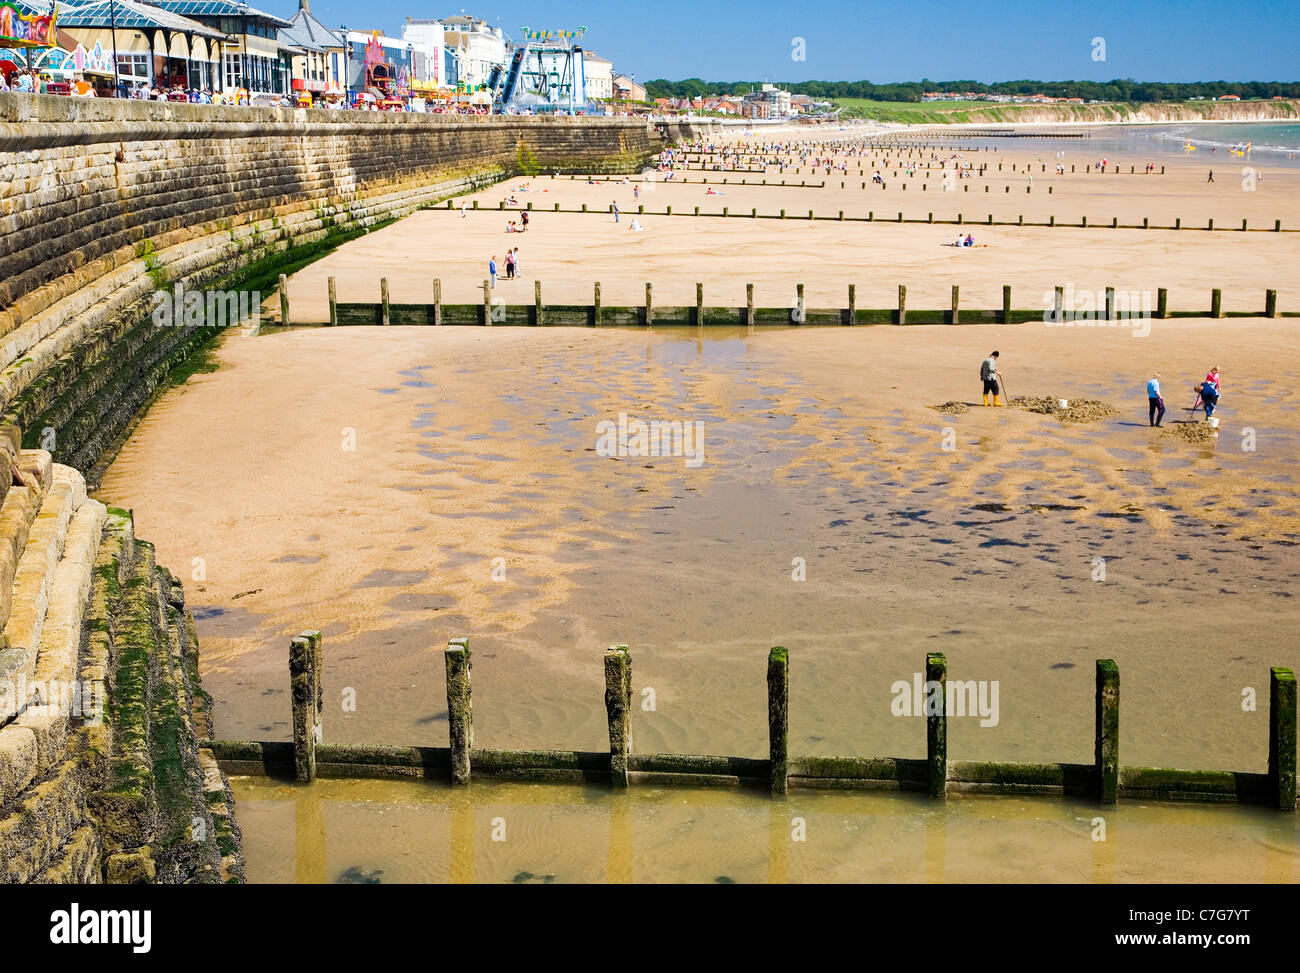 Bridlington beach with groynes and breakwaters on the Yorkshire coast, England - Stock Image